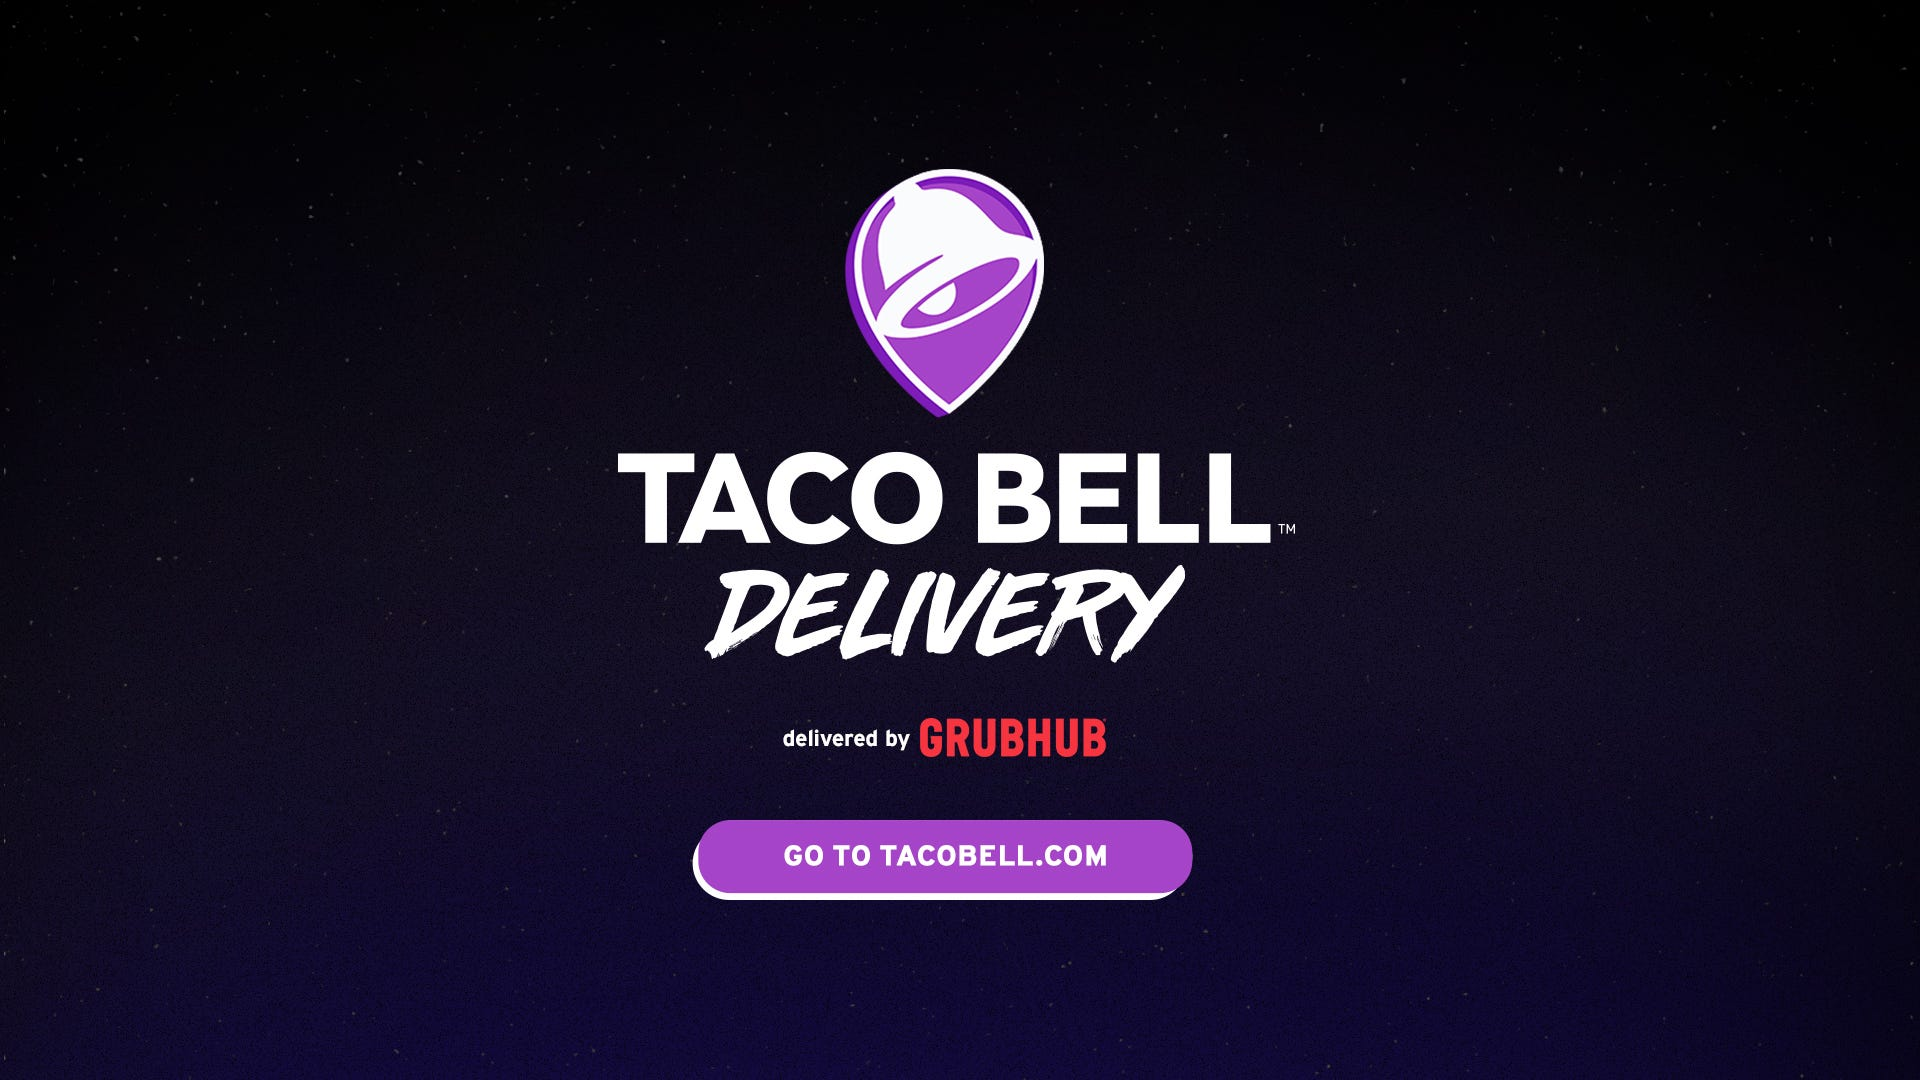 Taco Bell Announces Nationwide Delivery With Grubhub